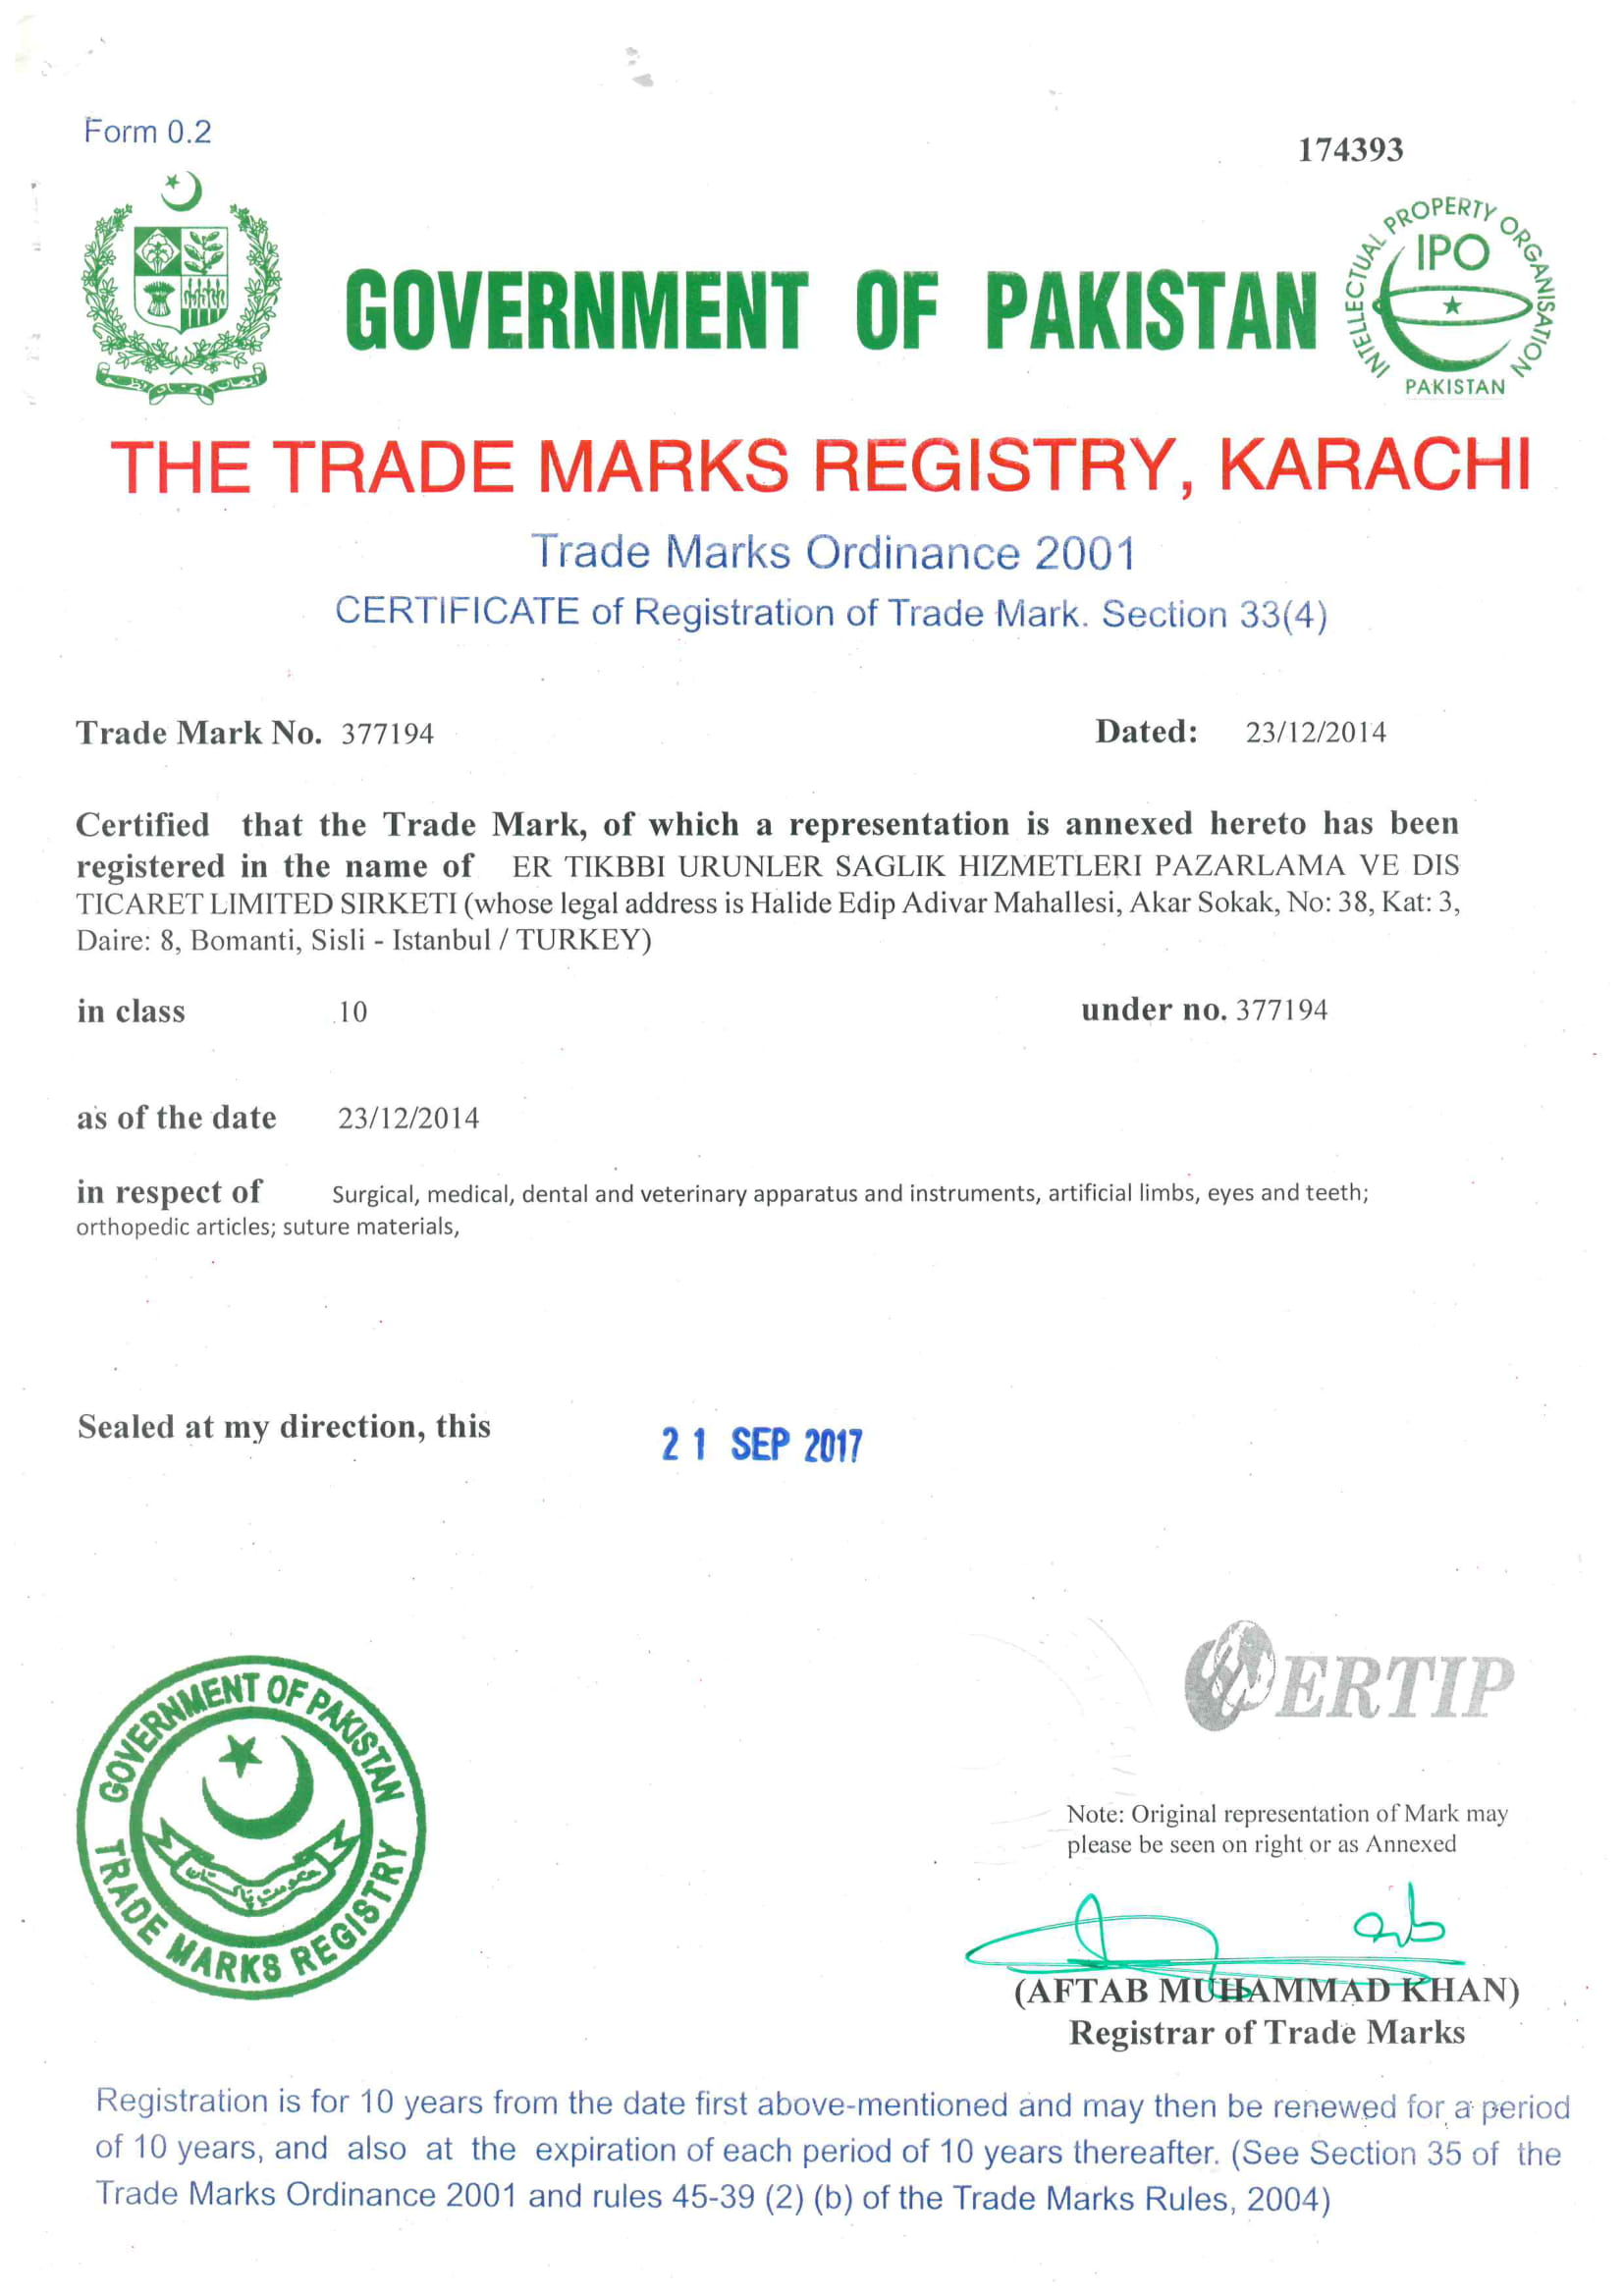 Pakistan Trademark Registration Certificate